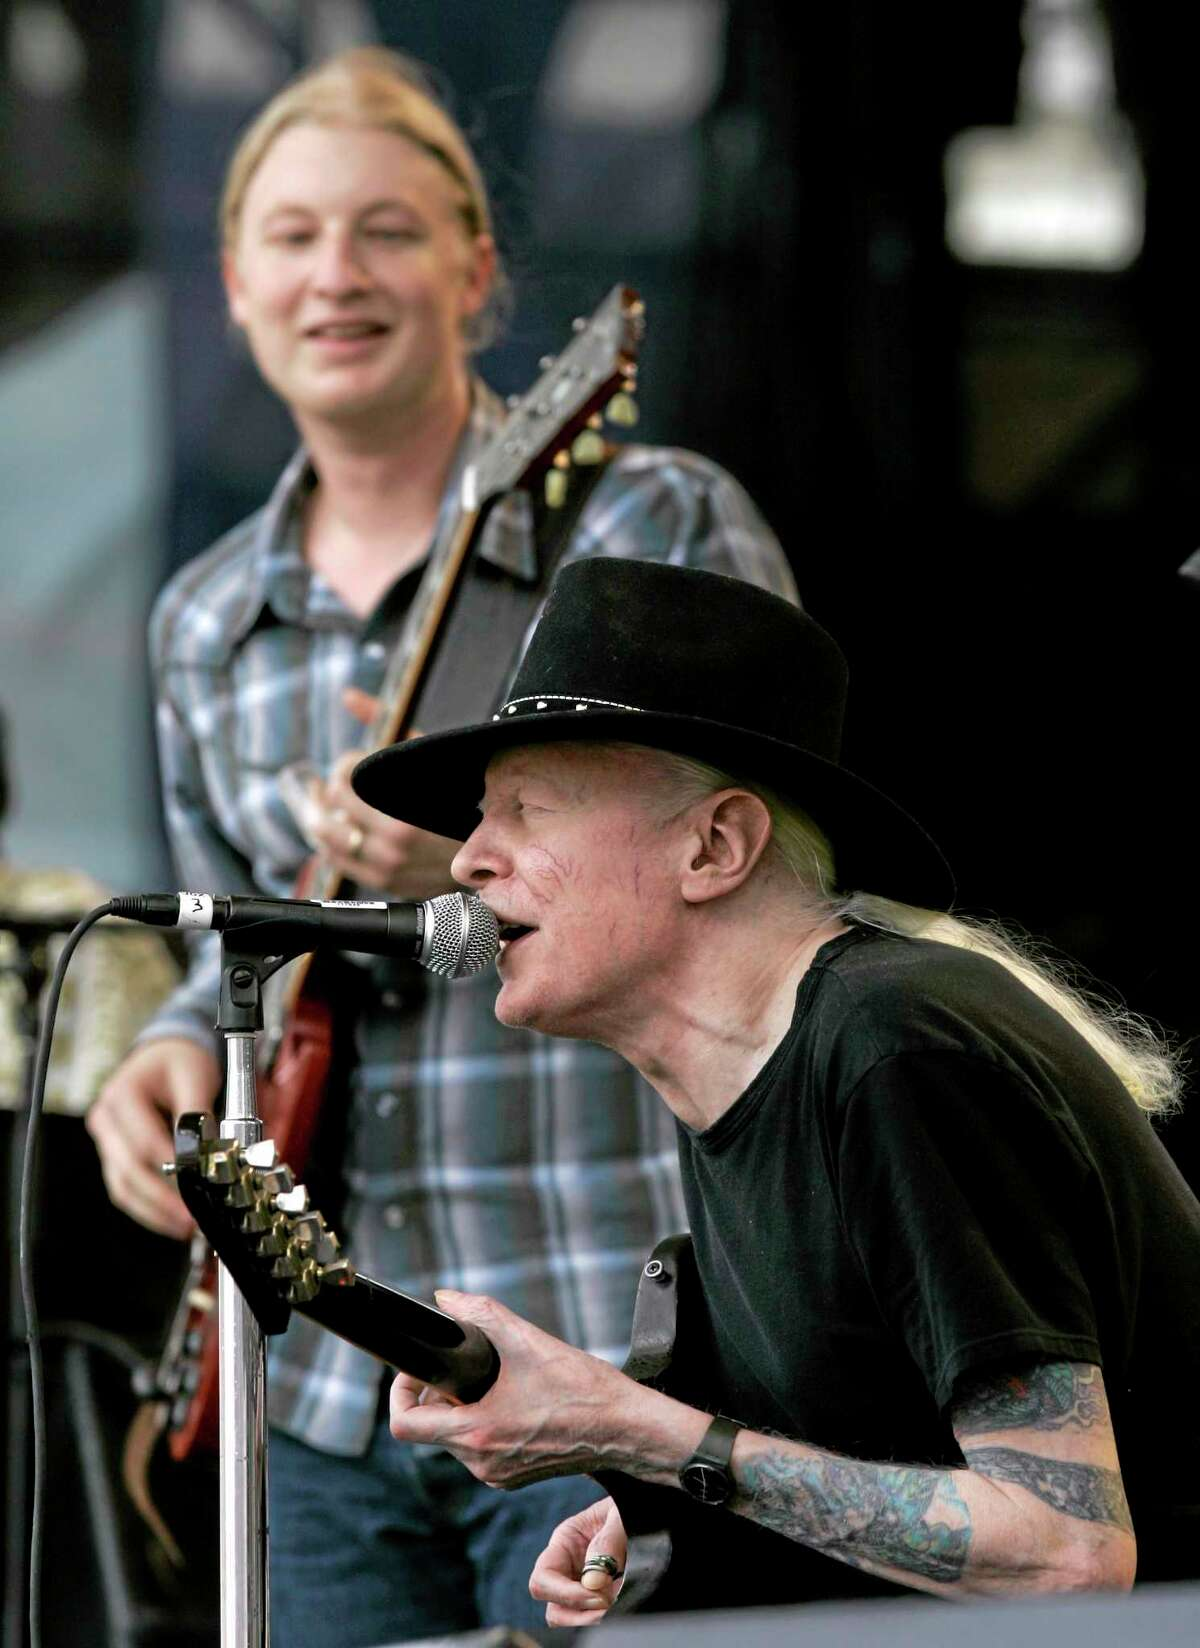 """FILE - In this Saturday, July 28, 2007 file photo, Johnny Winter, seated, and Derek Trucks, background, perform """"Highway 61"""" at the Crossroads Guitar Festival in Chicago. Texas blues icon Johnny Winter, who rose to fame in the late 1960s and '70s with his energetic performances and recordings that included producing his childhood hero Muddy Waters, died in Zurich, Switzerland on Wednesday, July 16, 2014. He was 70. (AP Photo/Charles Rex Arbogast, File)"""